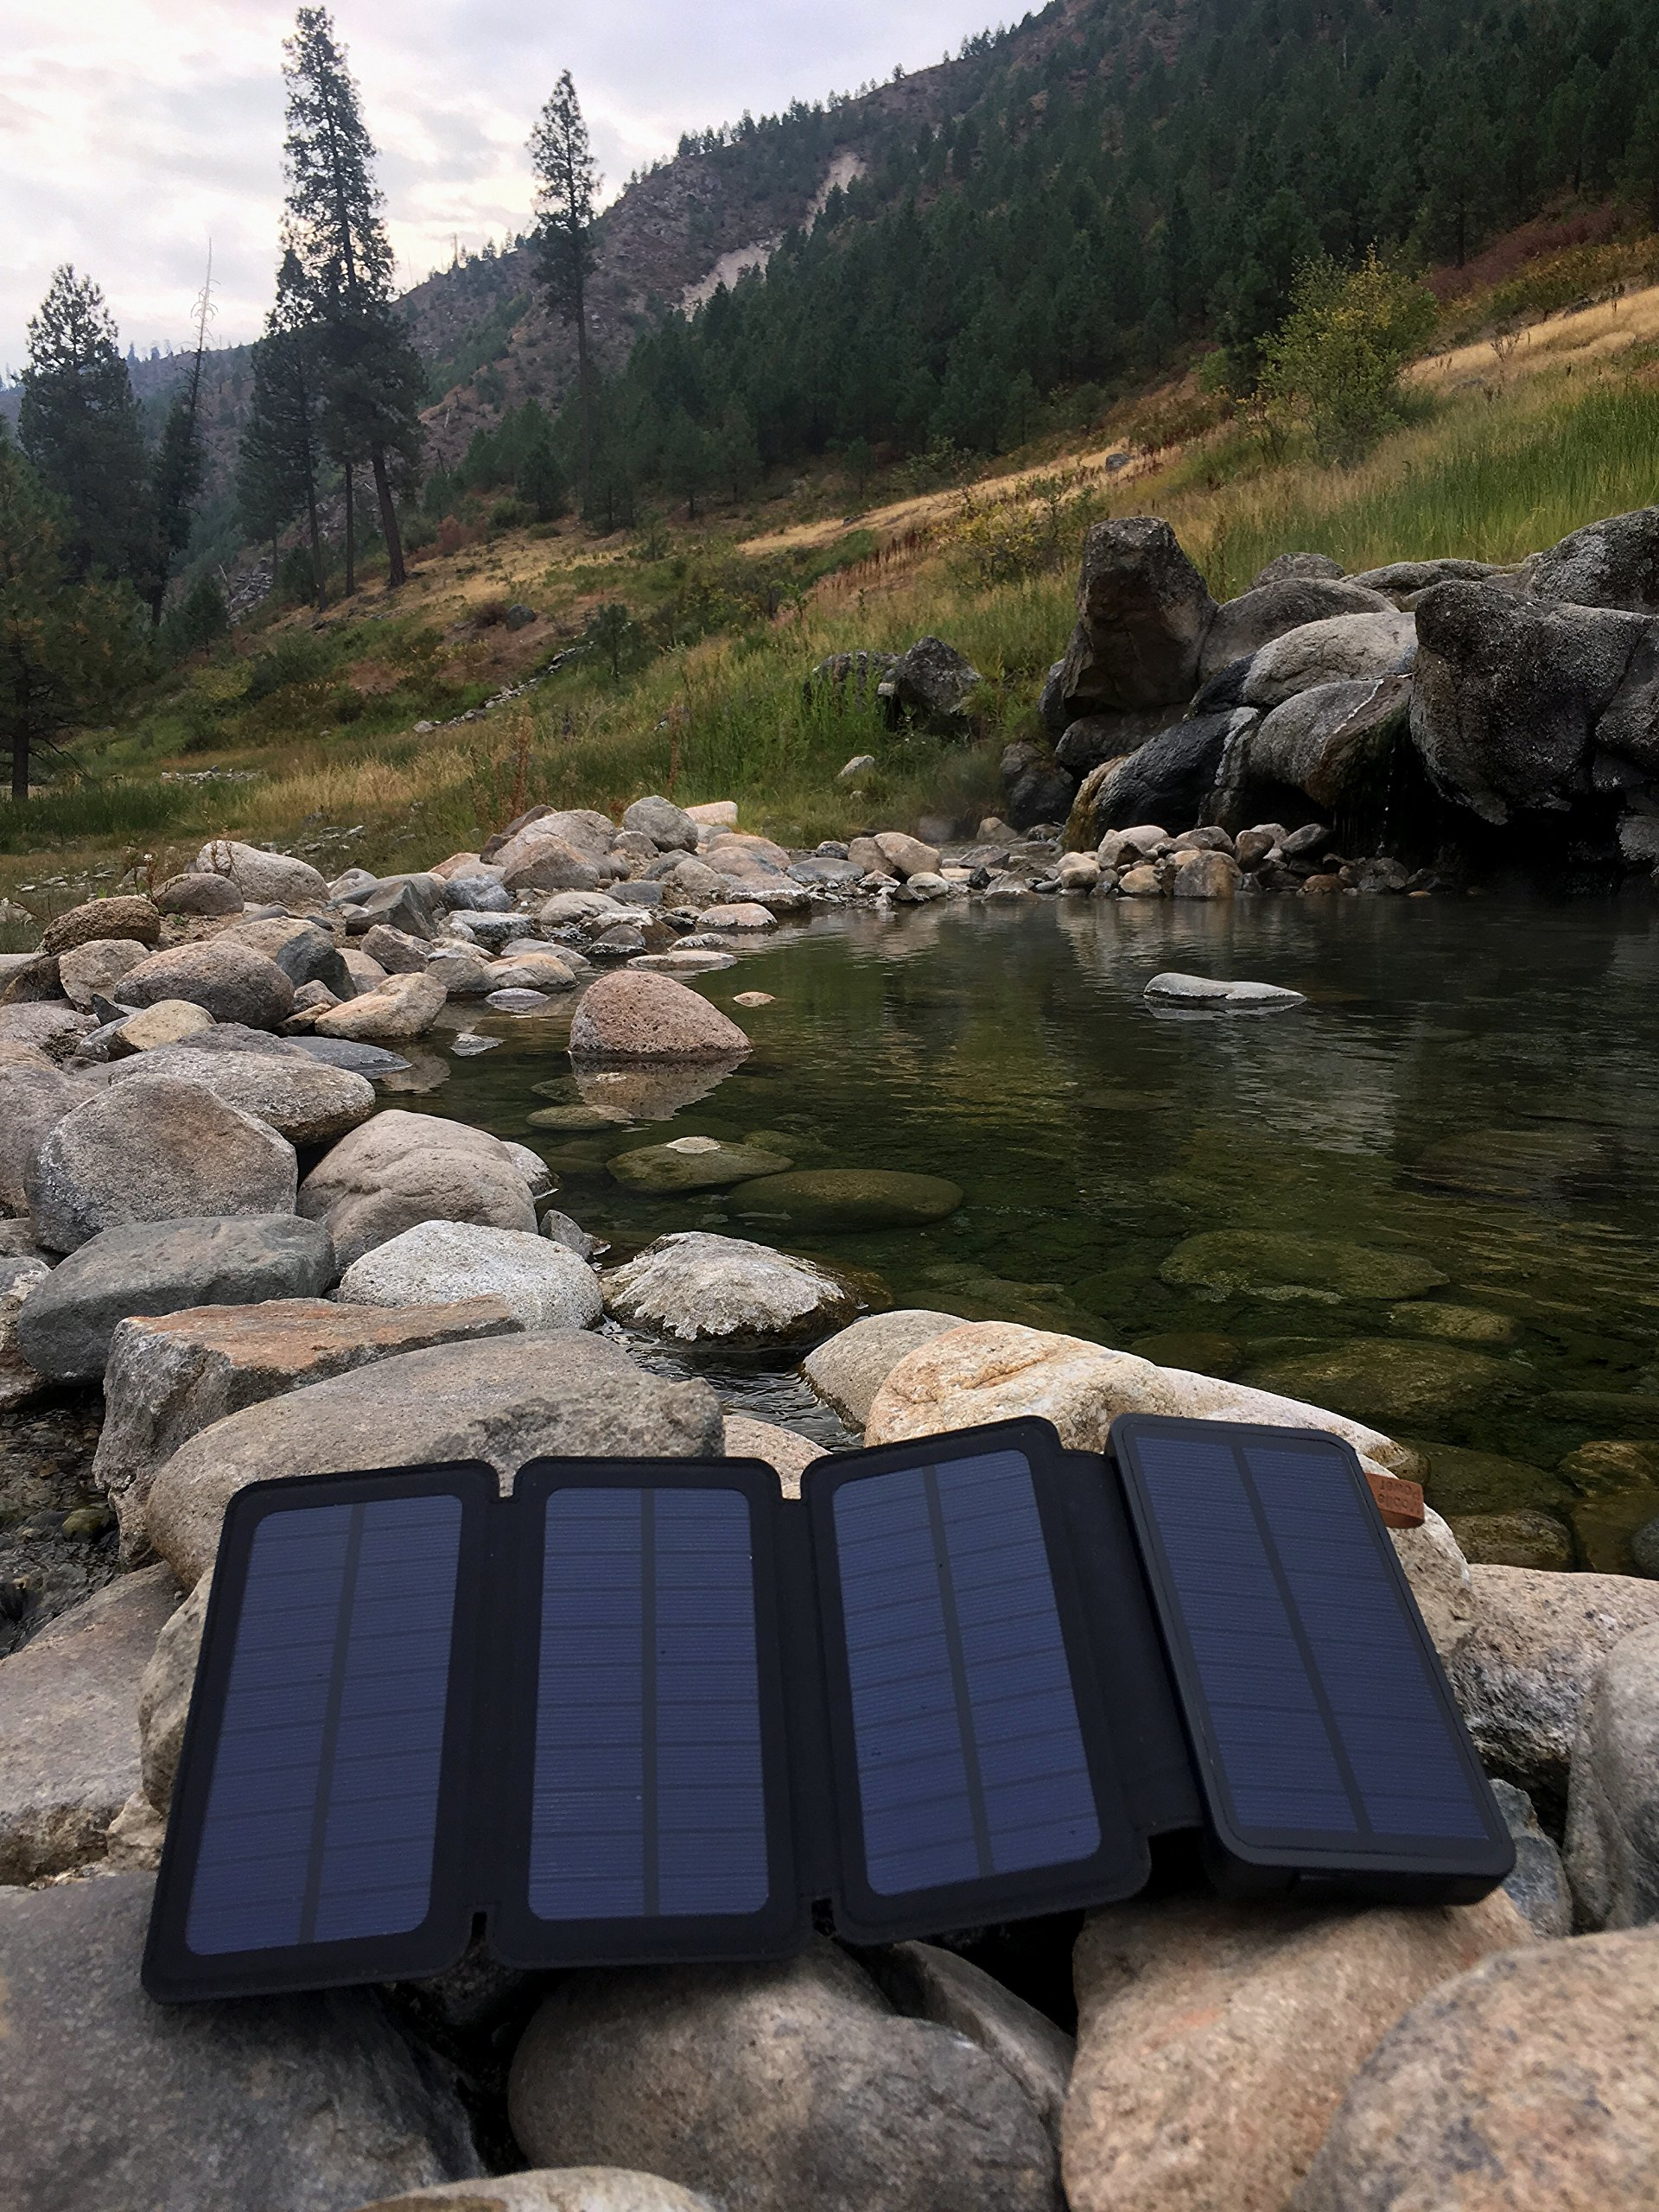 SunJack 5W Solar Charger Power Bank Portable External Battery with Flashlight for iPhone, iPad, Samsung, Backpacking, Camping, Hiking by SunJack (Image #7)